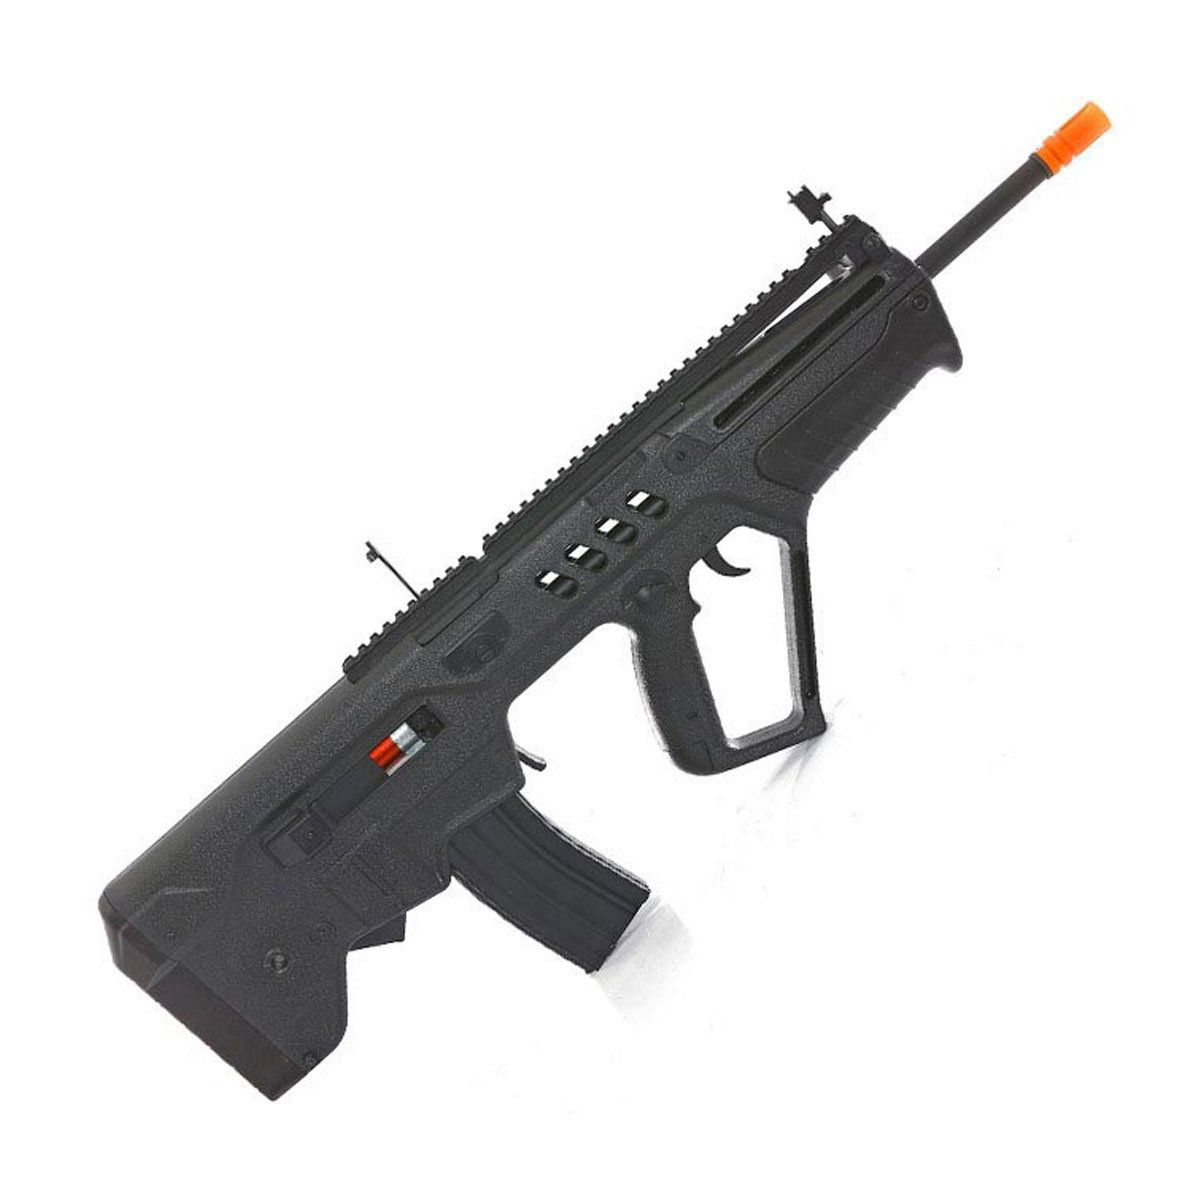 Rifle de Airsoft S&T Tavor T-21 Elétrico 6mm